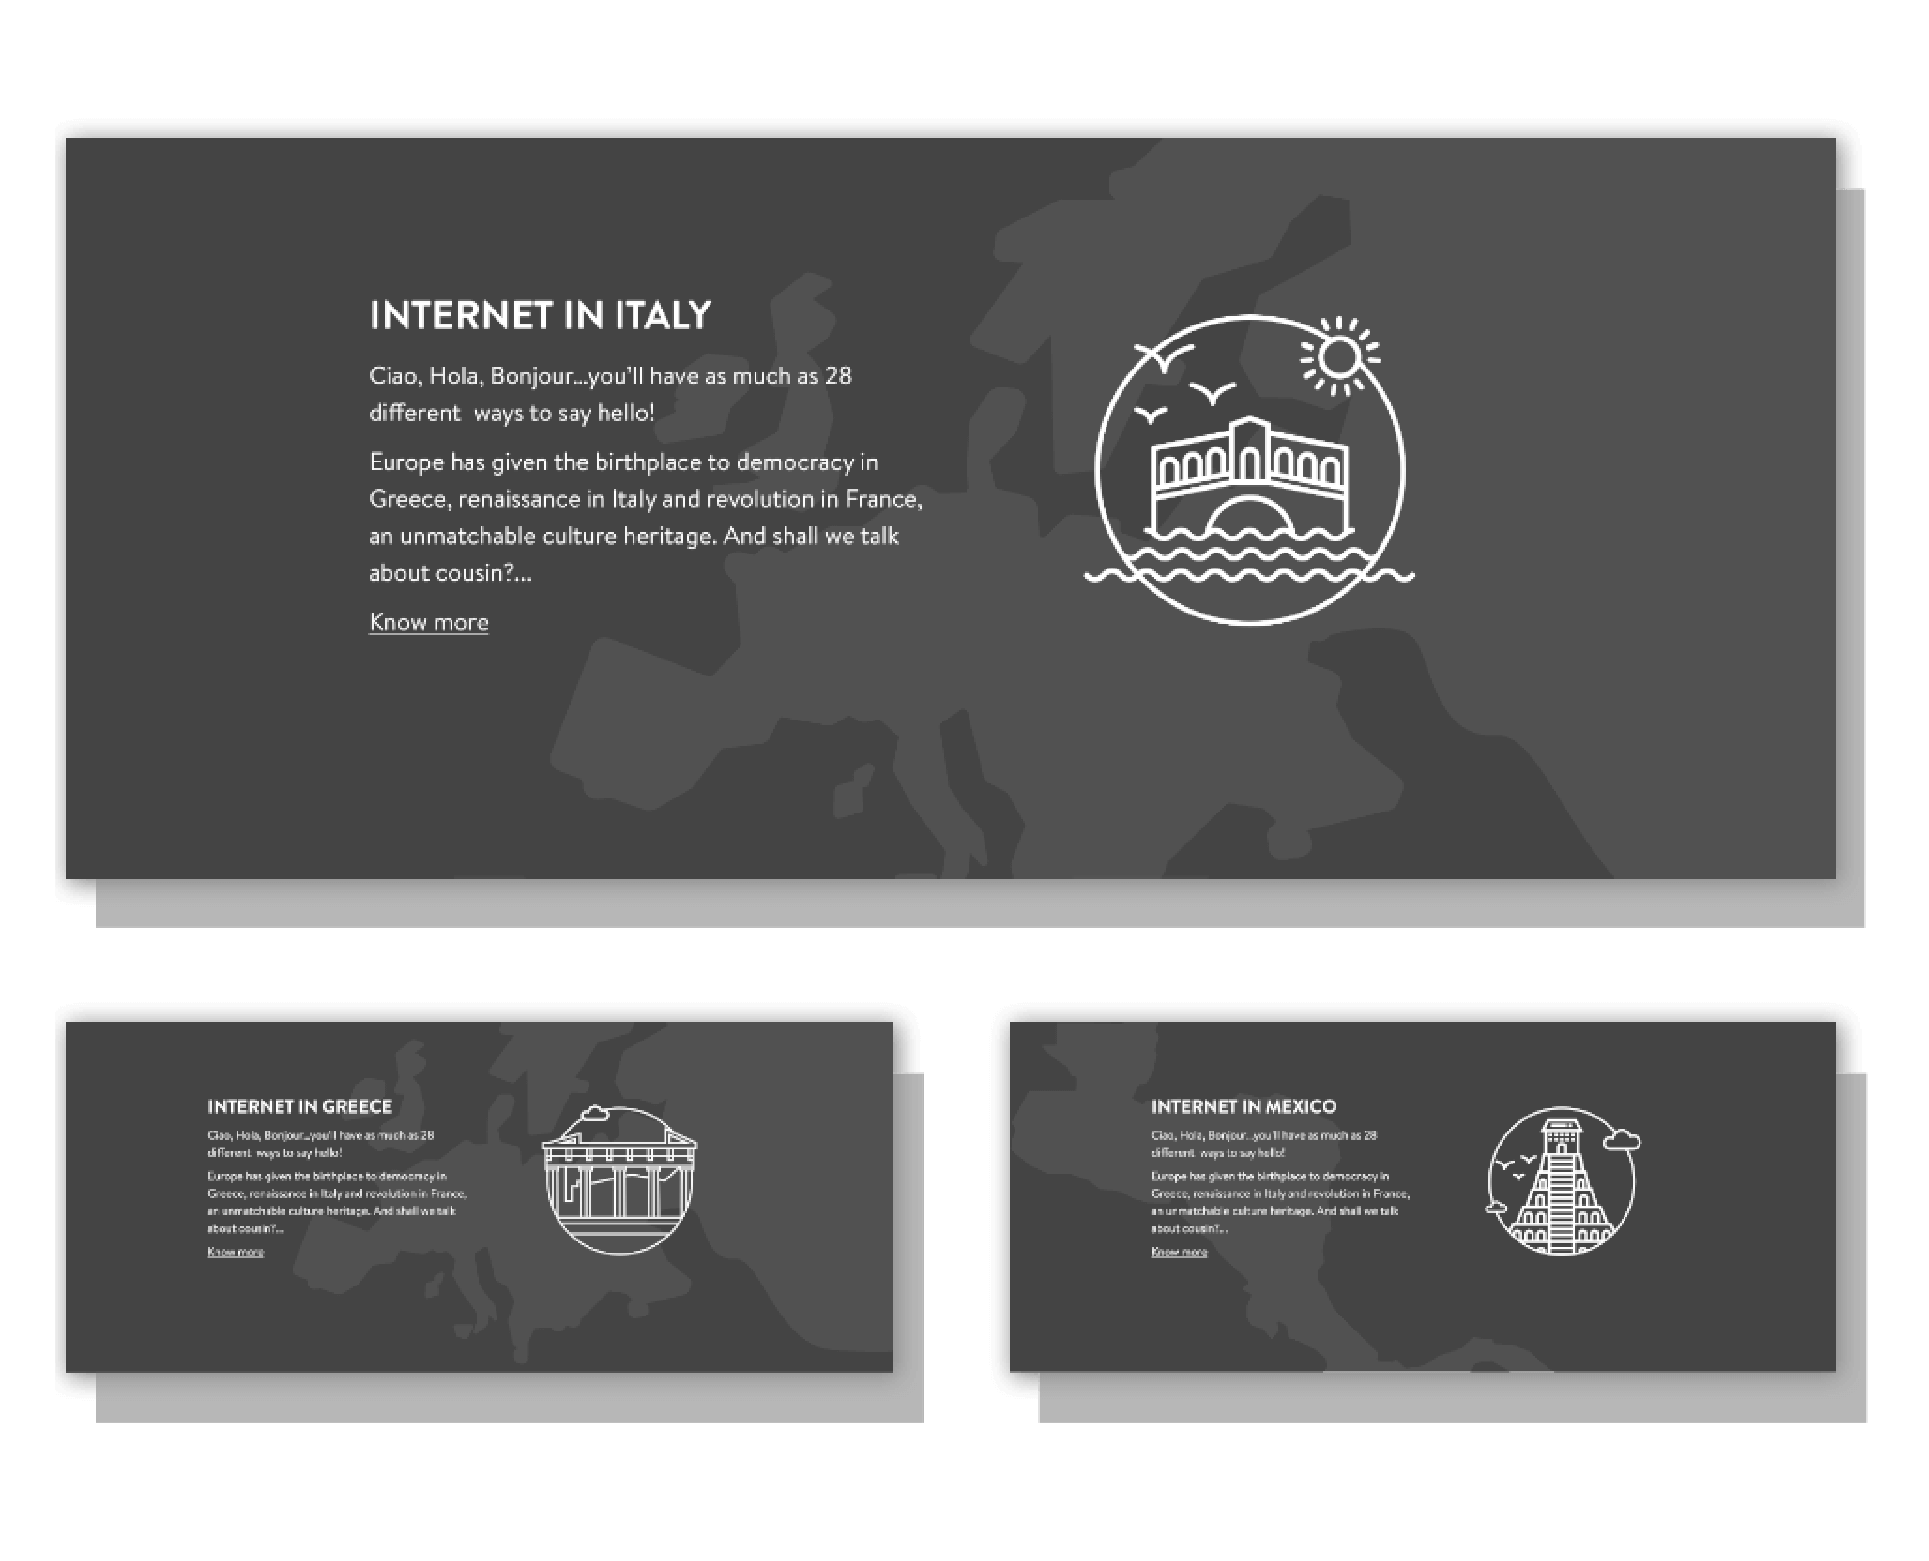 Imaginary Cloud UX/UI design project for TravelWifi (former TEP).